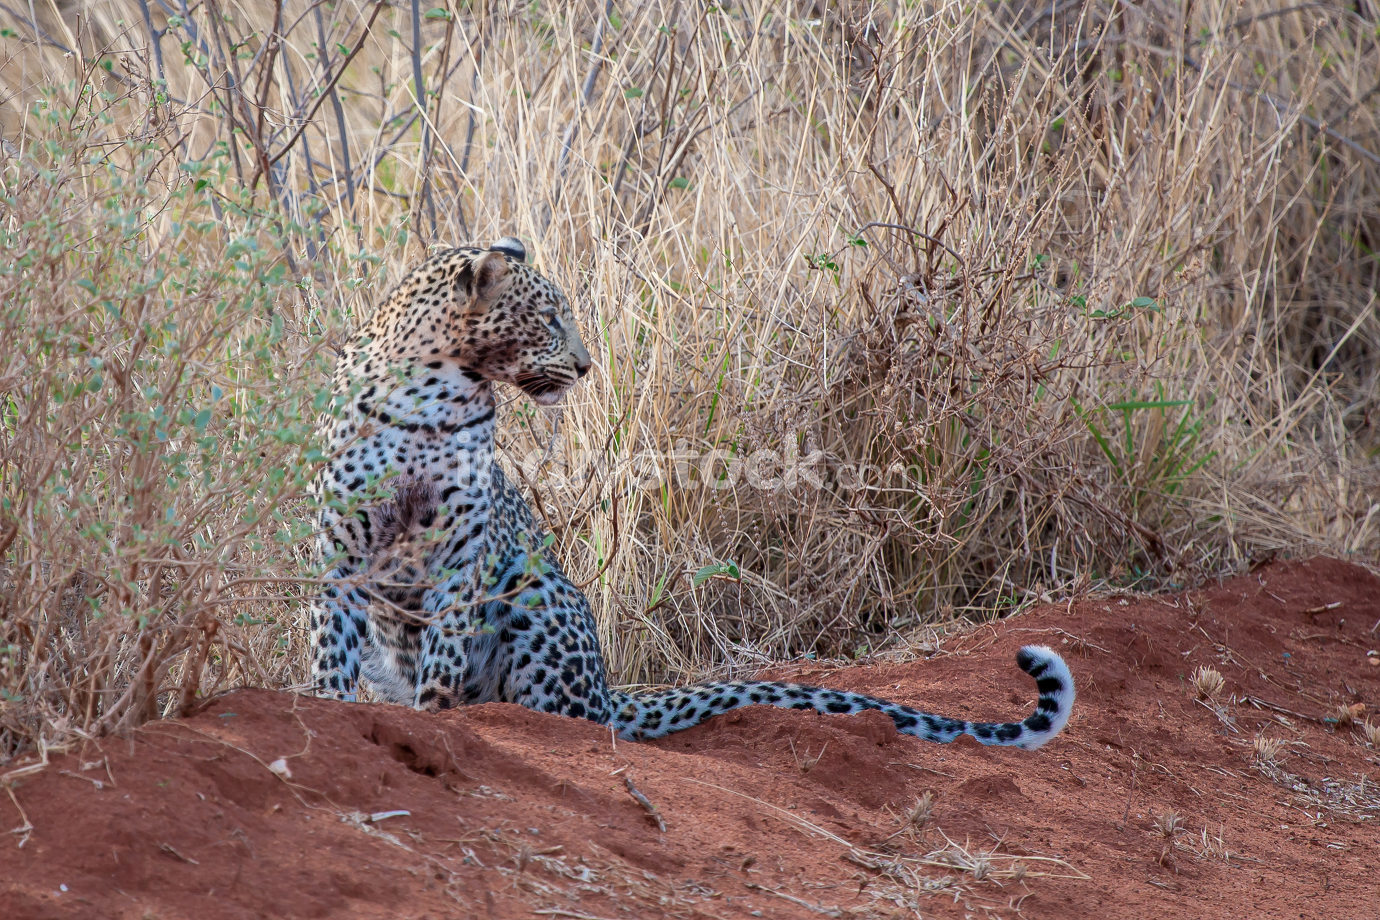 Leopard is sitting, with a dirty mouth, after hunting